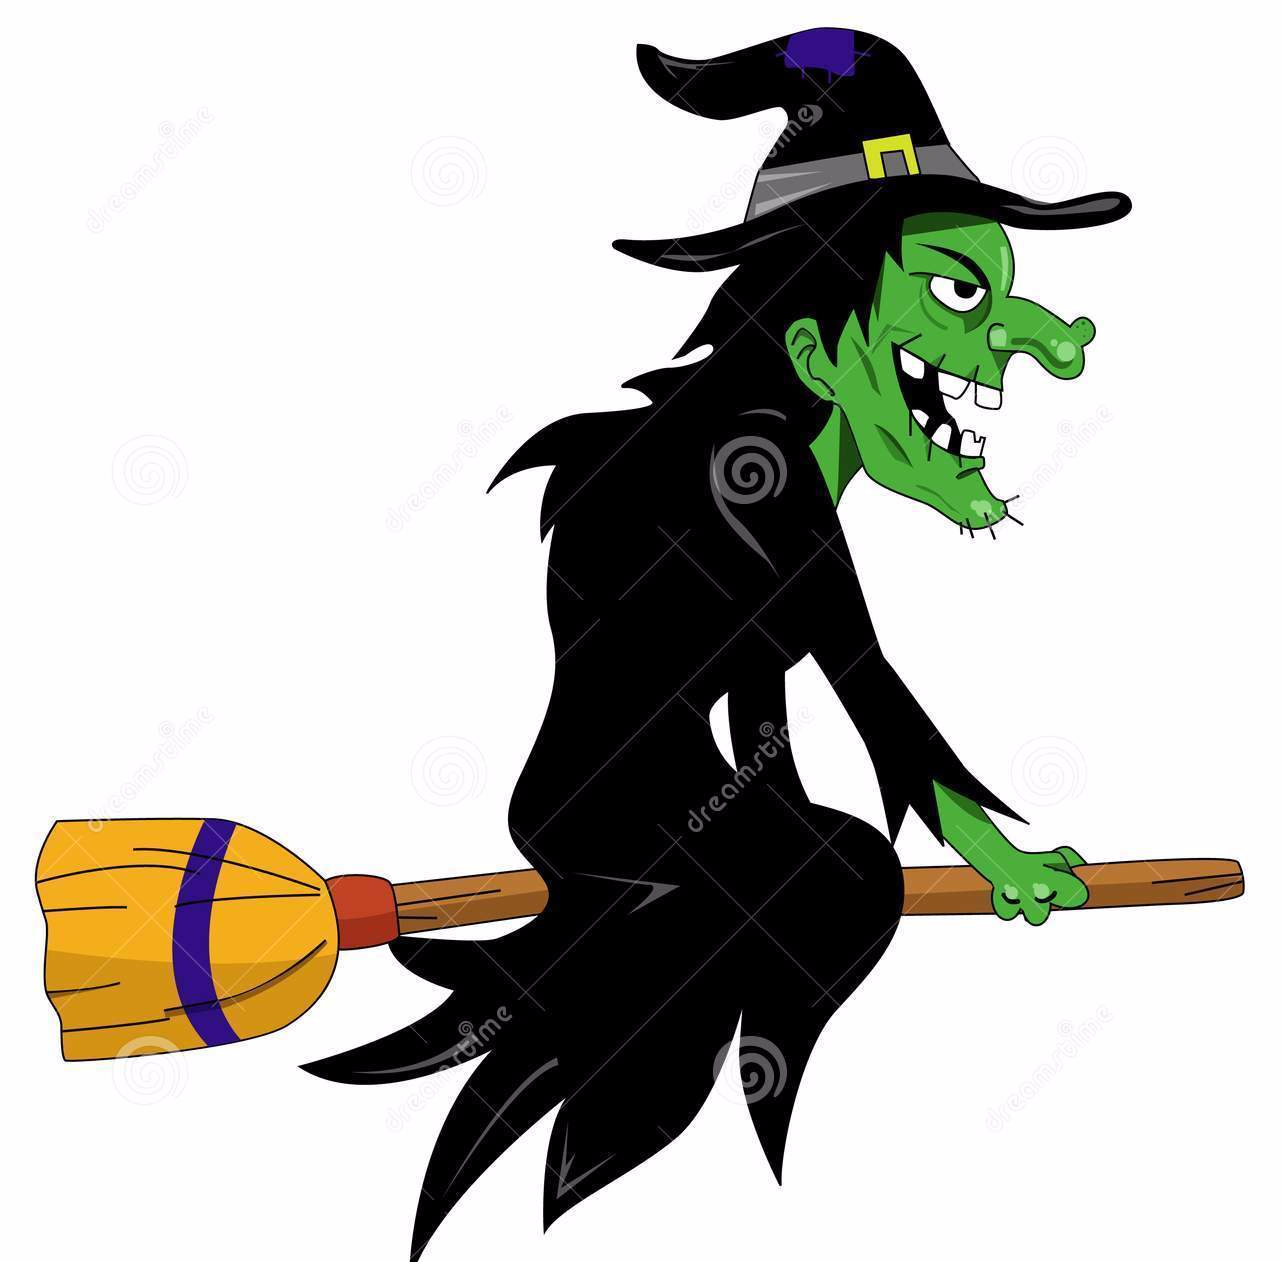 halloween-witch-vector-illustration-art-34475082.jpg